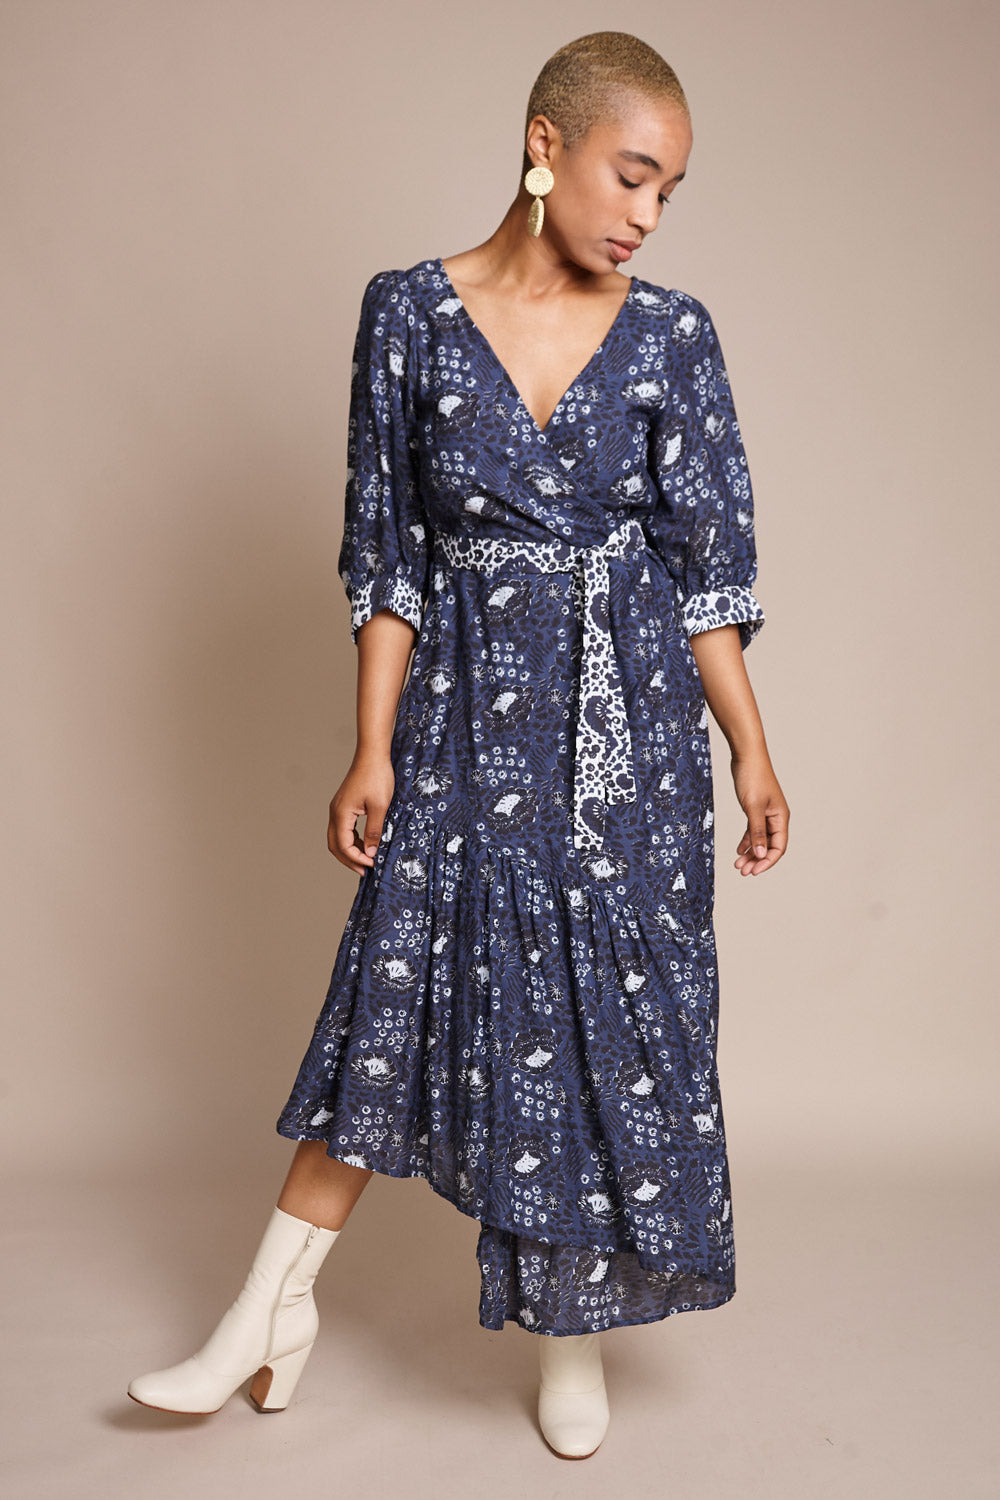 Bougainvillea Wrap Dress in Navy Sombras Floral